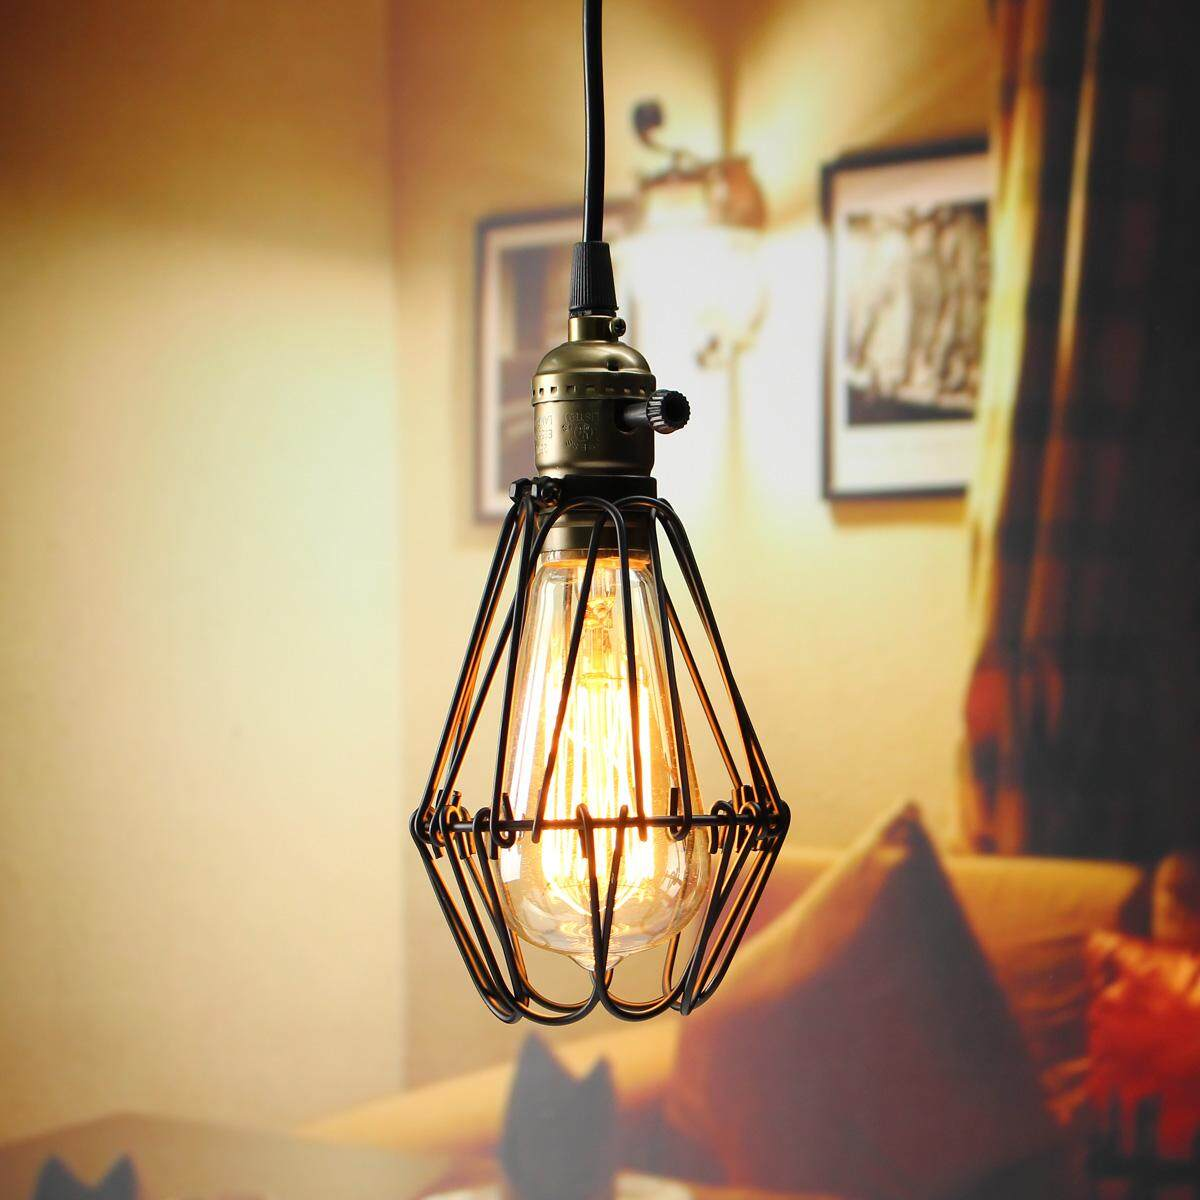 Industrial Retro Vintage Pendant Celling Light Bulb Hanging Lamp Shade Holder - Intl By Teamwin.